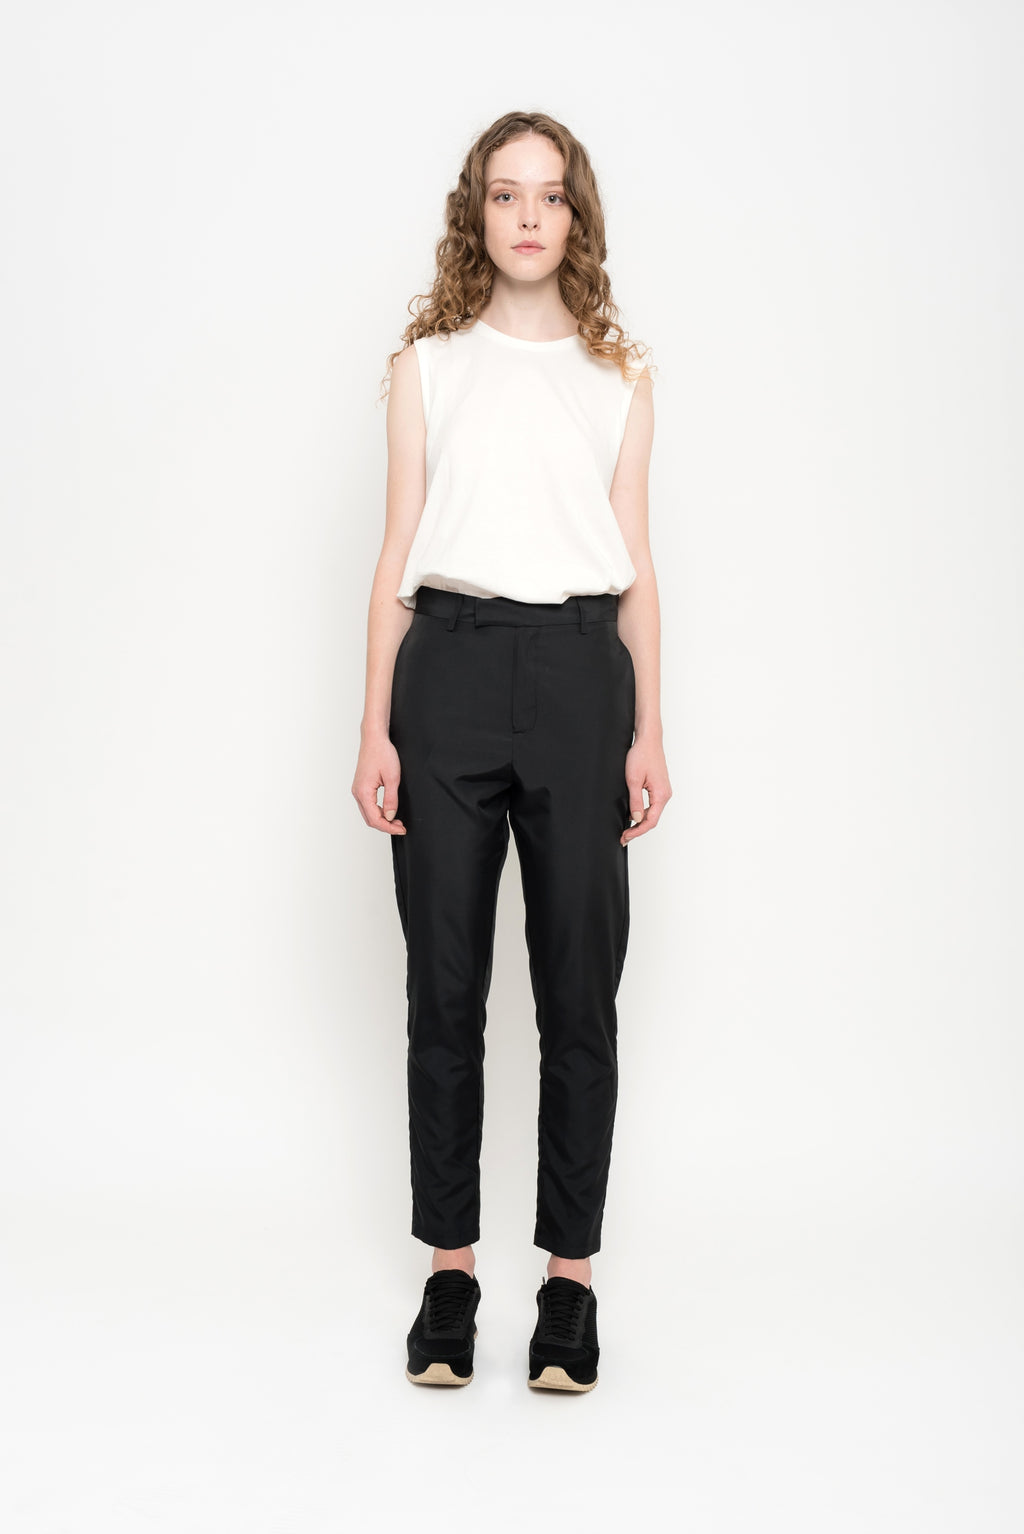 Tailored PET Nylon Pants | Abrasivo